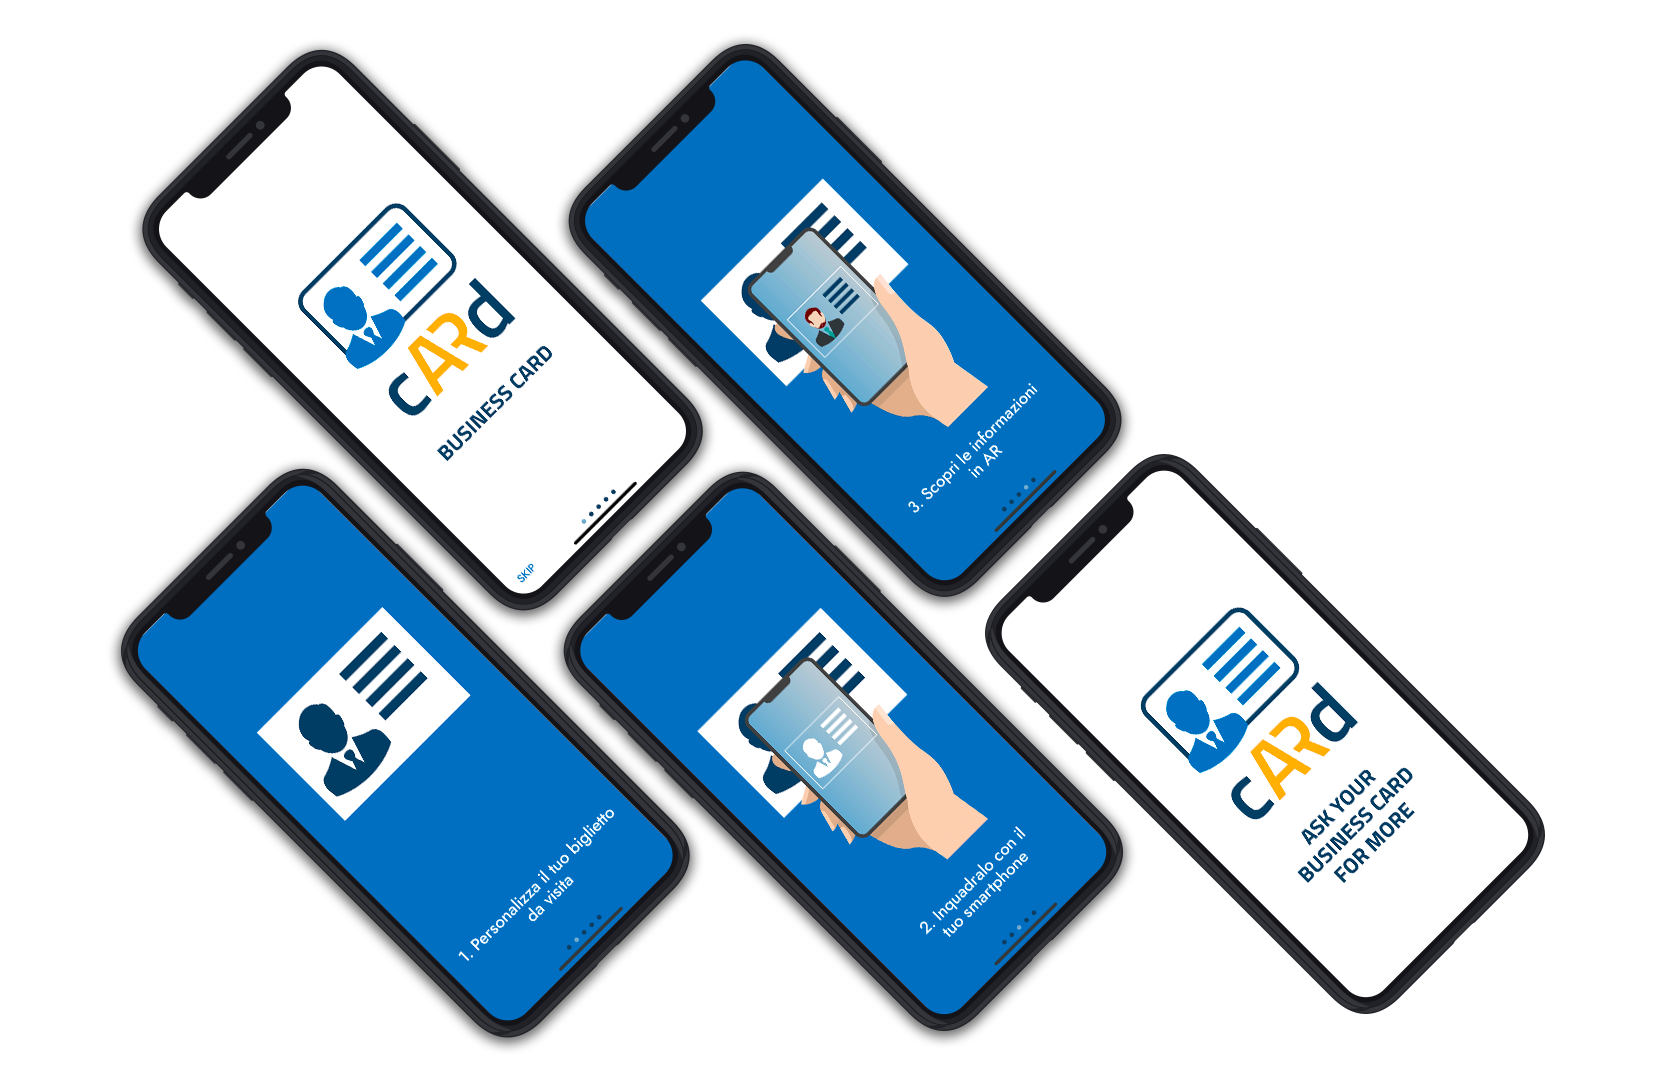 Overview of Business cARd app